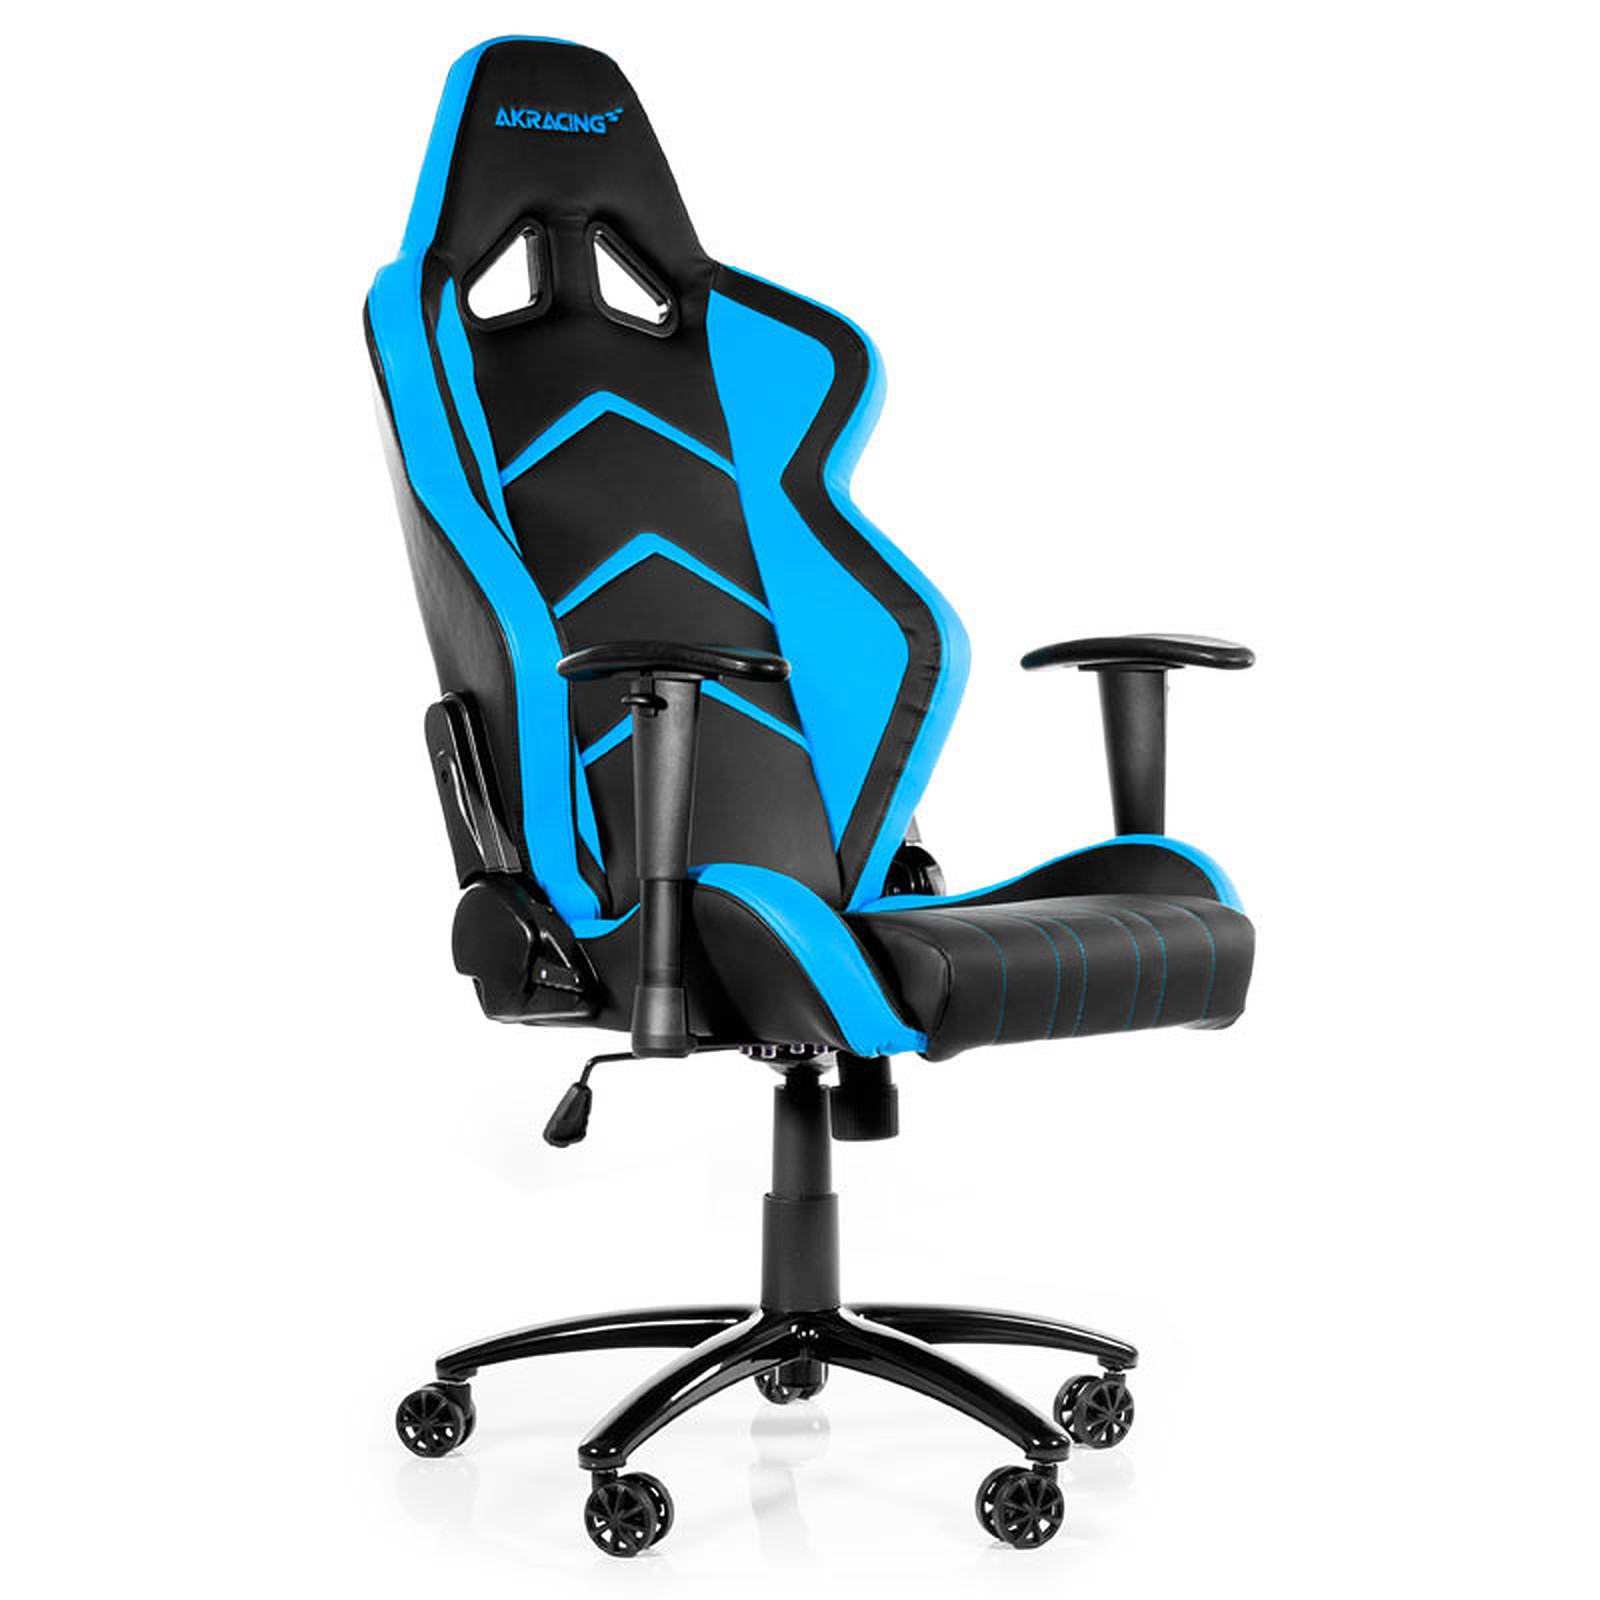 ChairbleuFauteuil Gaming Sur Gamer Akracing Player f7Yb6gyv